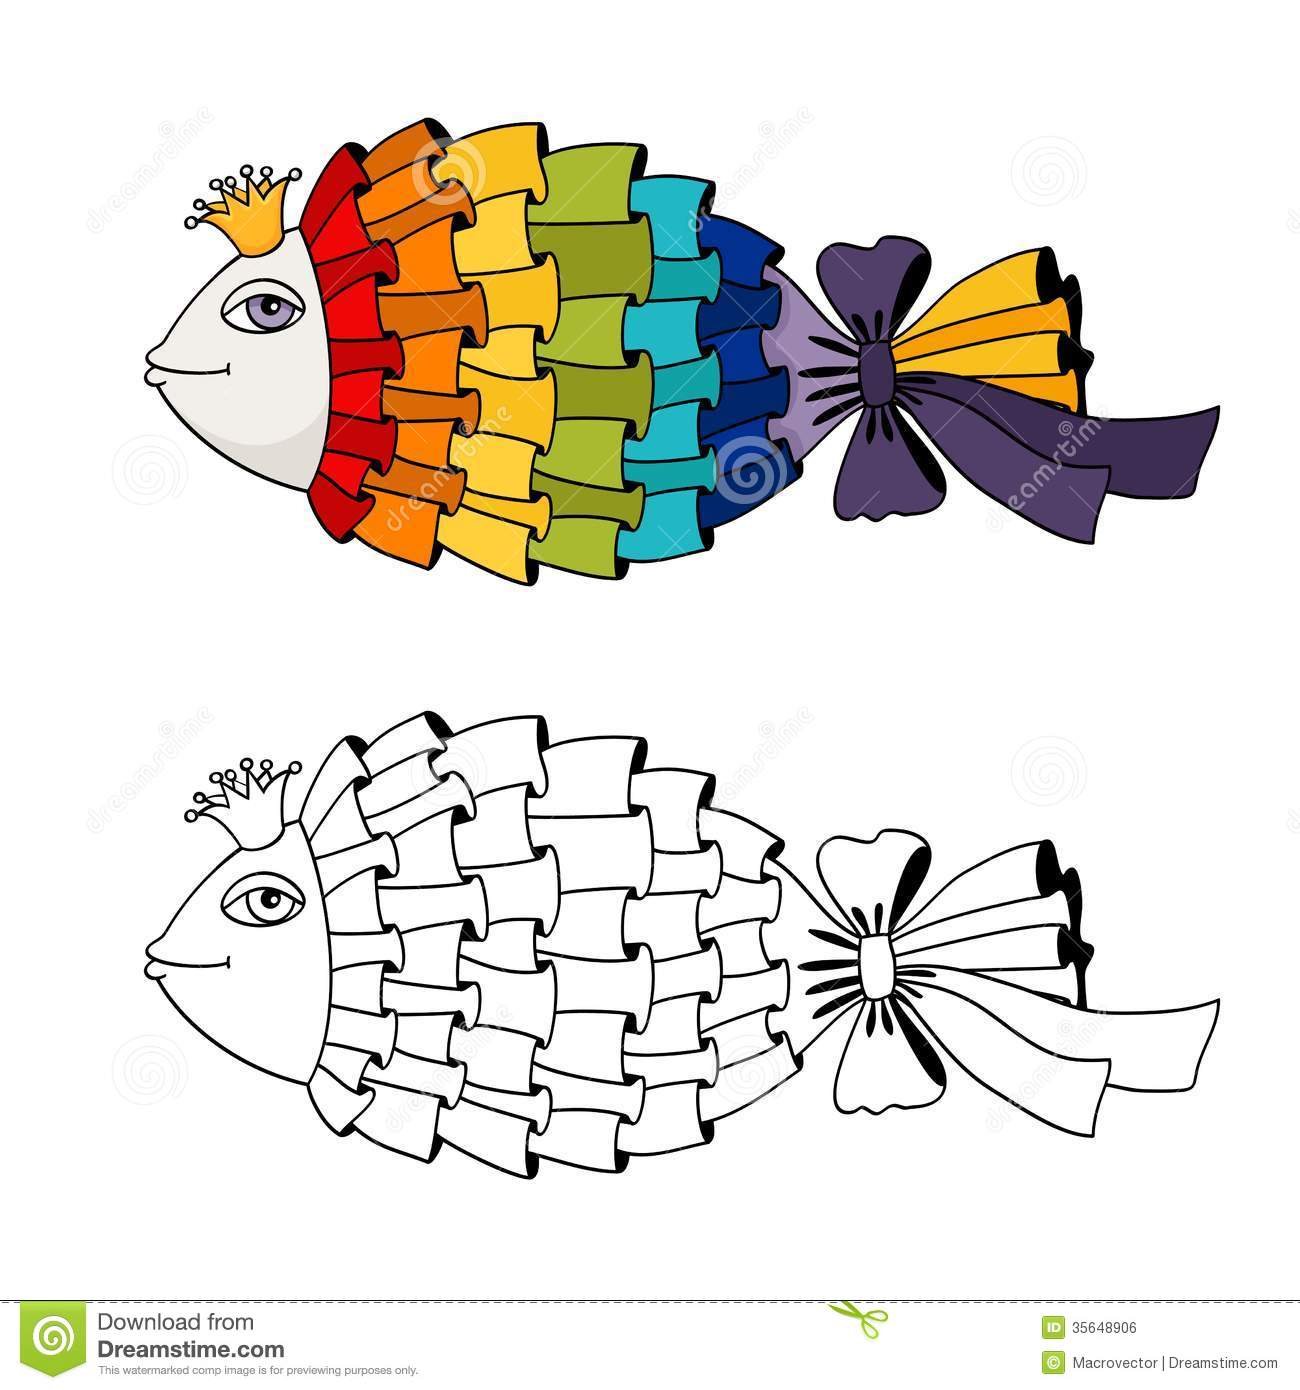 Rainbow Fish Coloring Pages